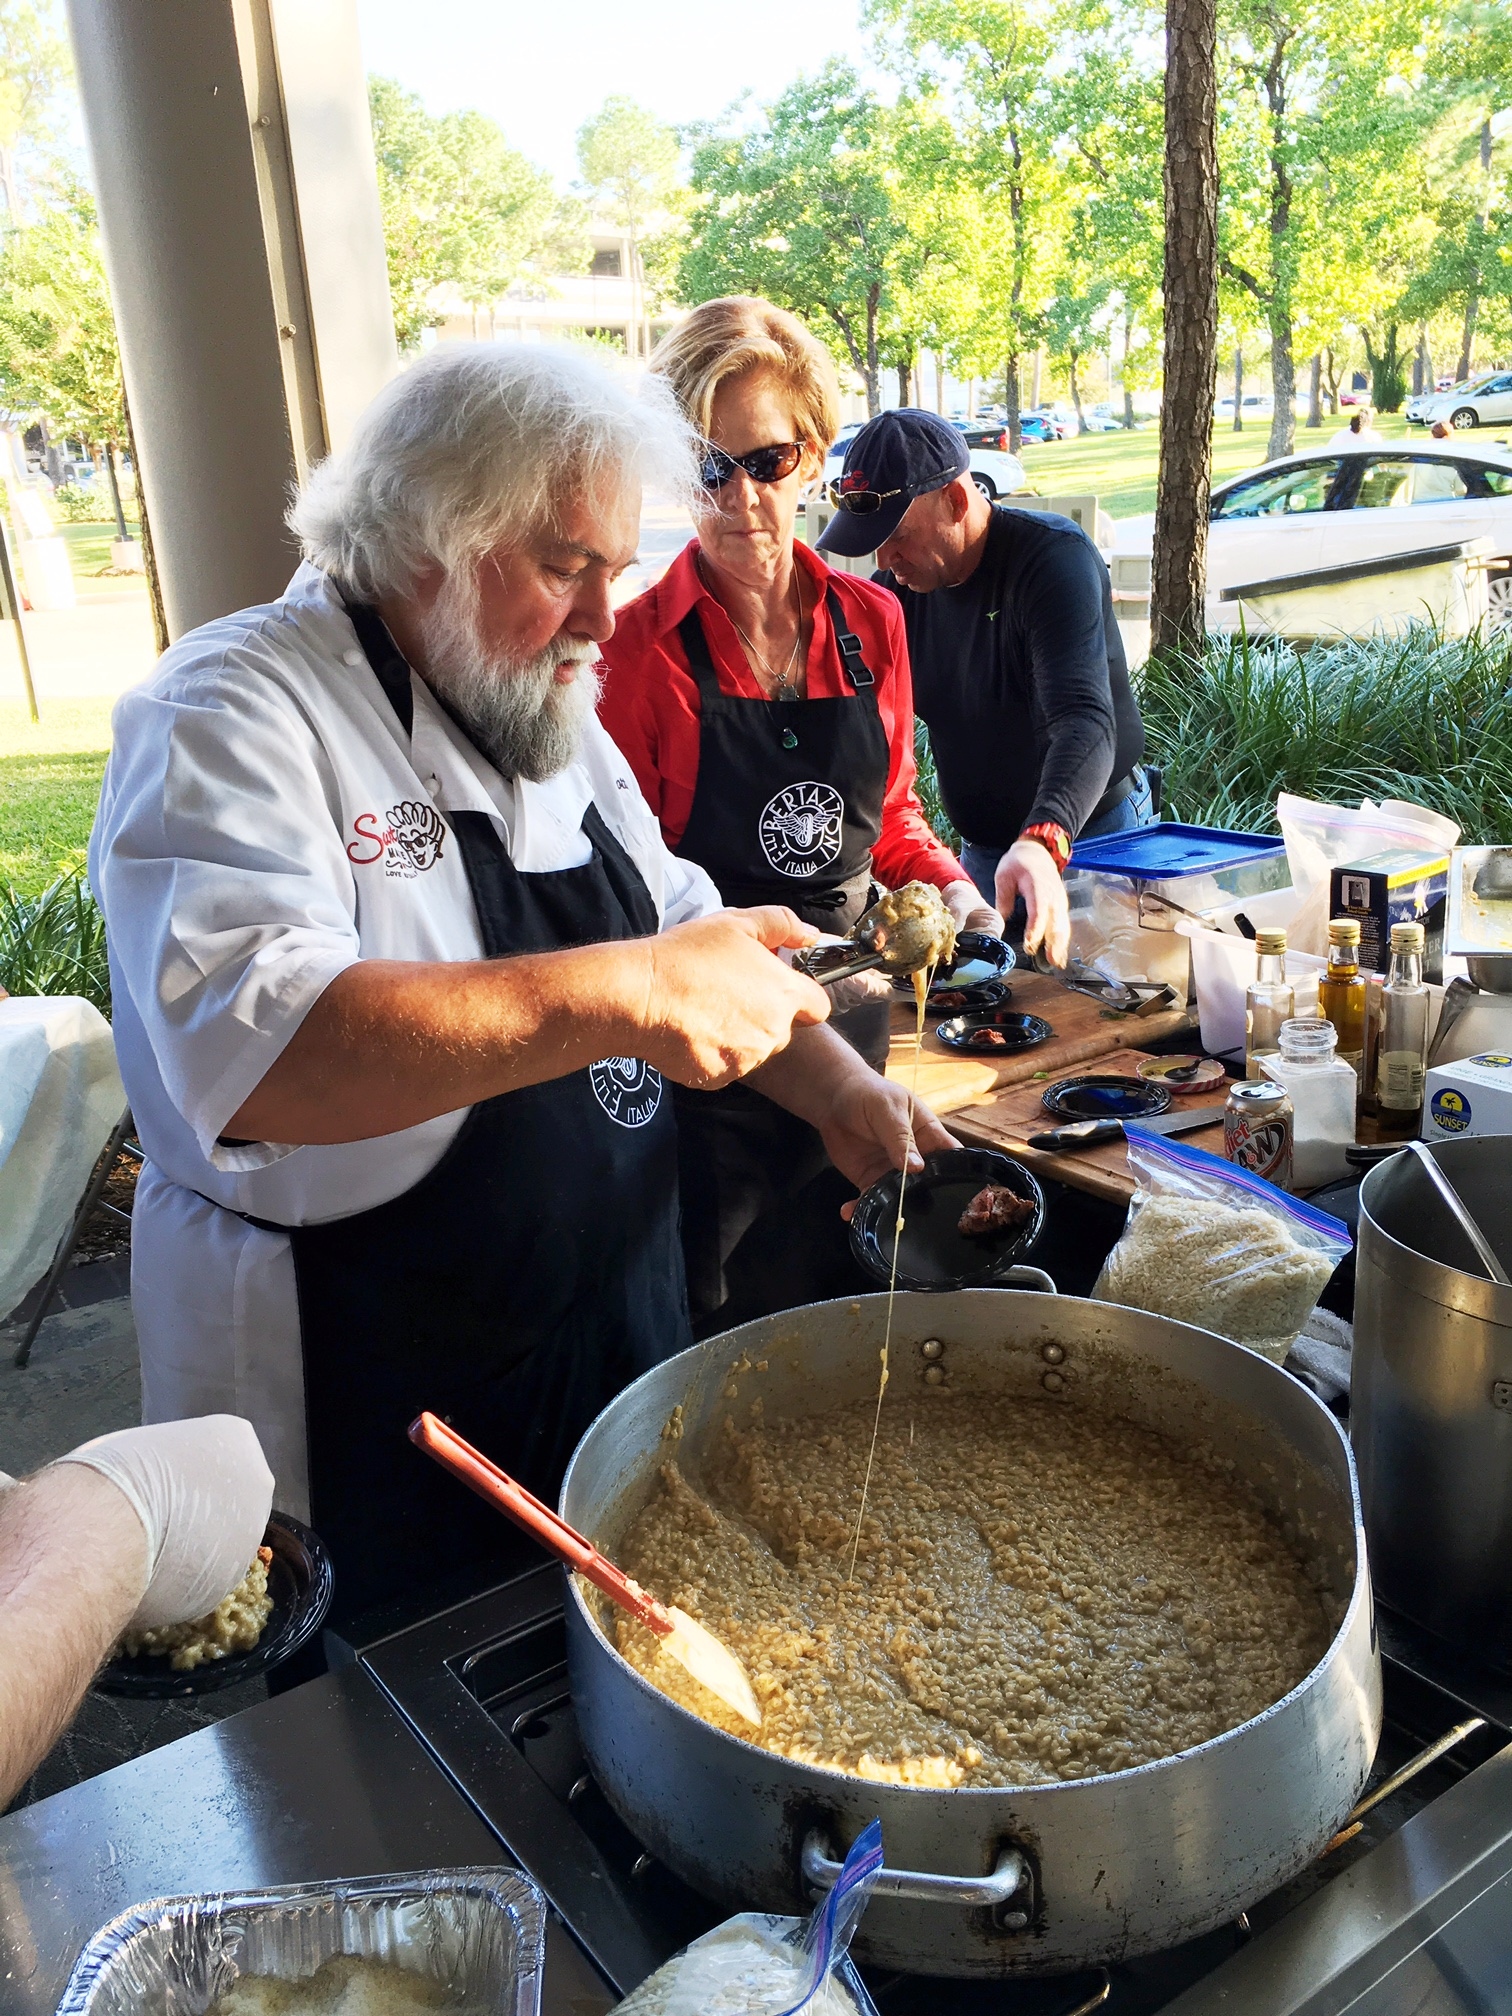 My favorite risotto at the International Risotto Festival